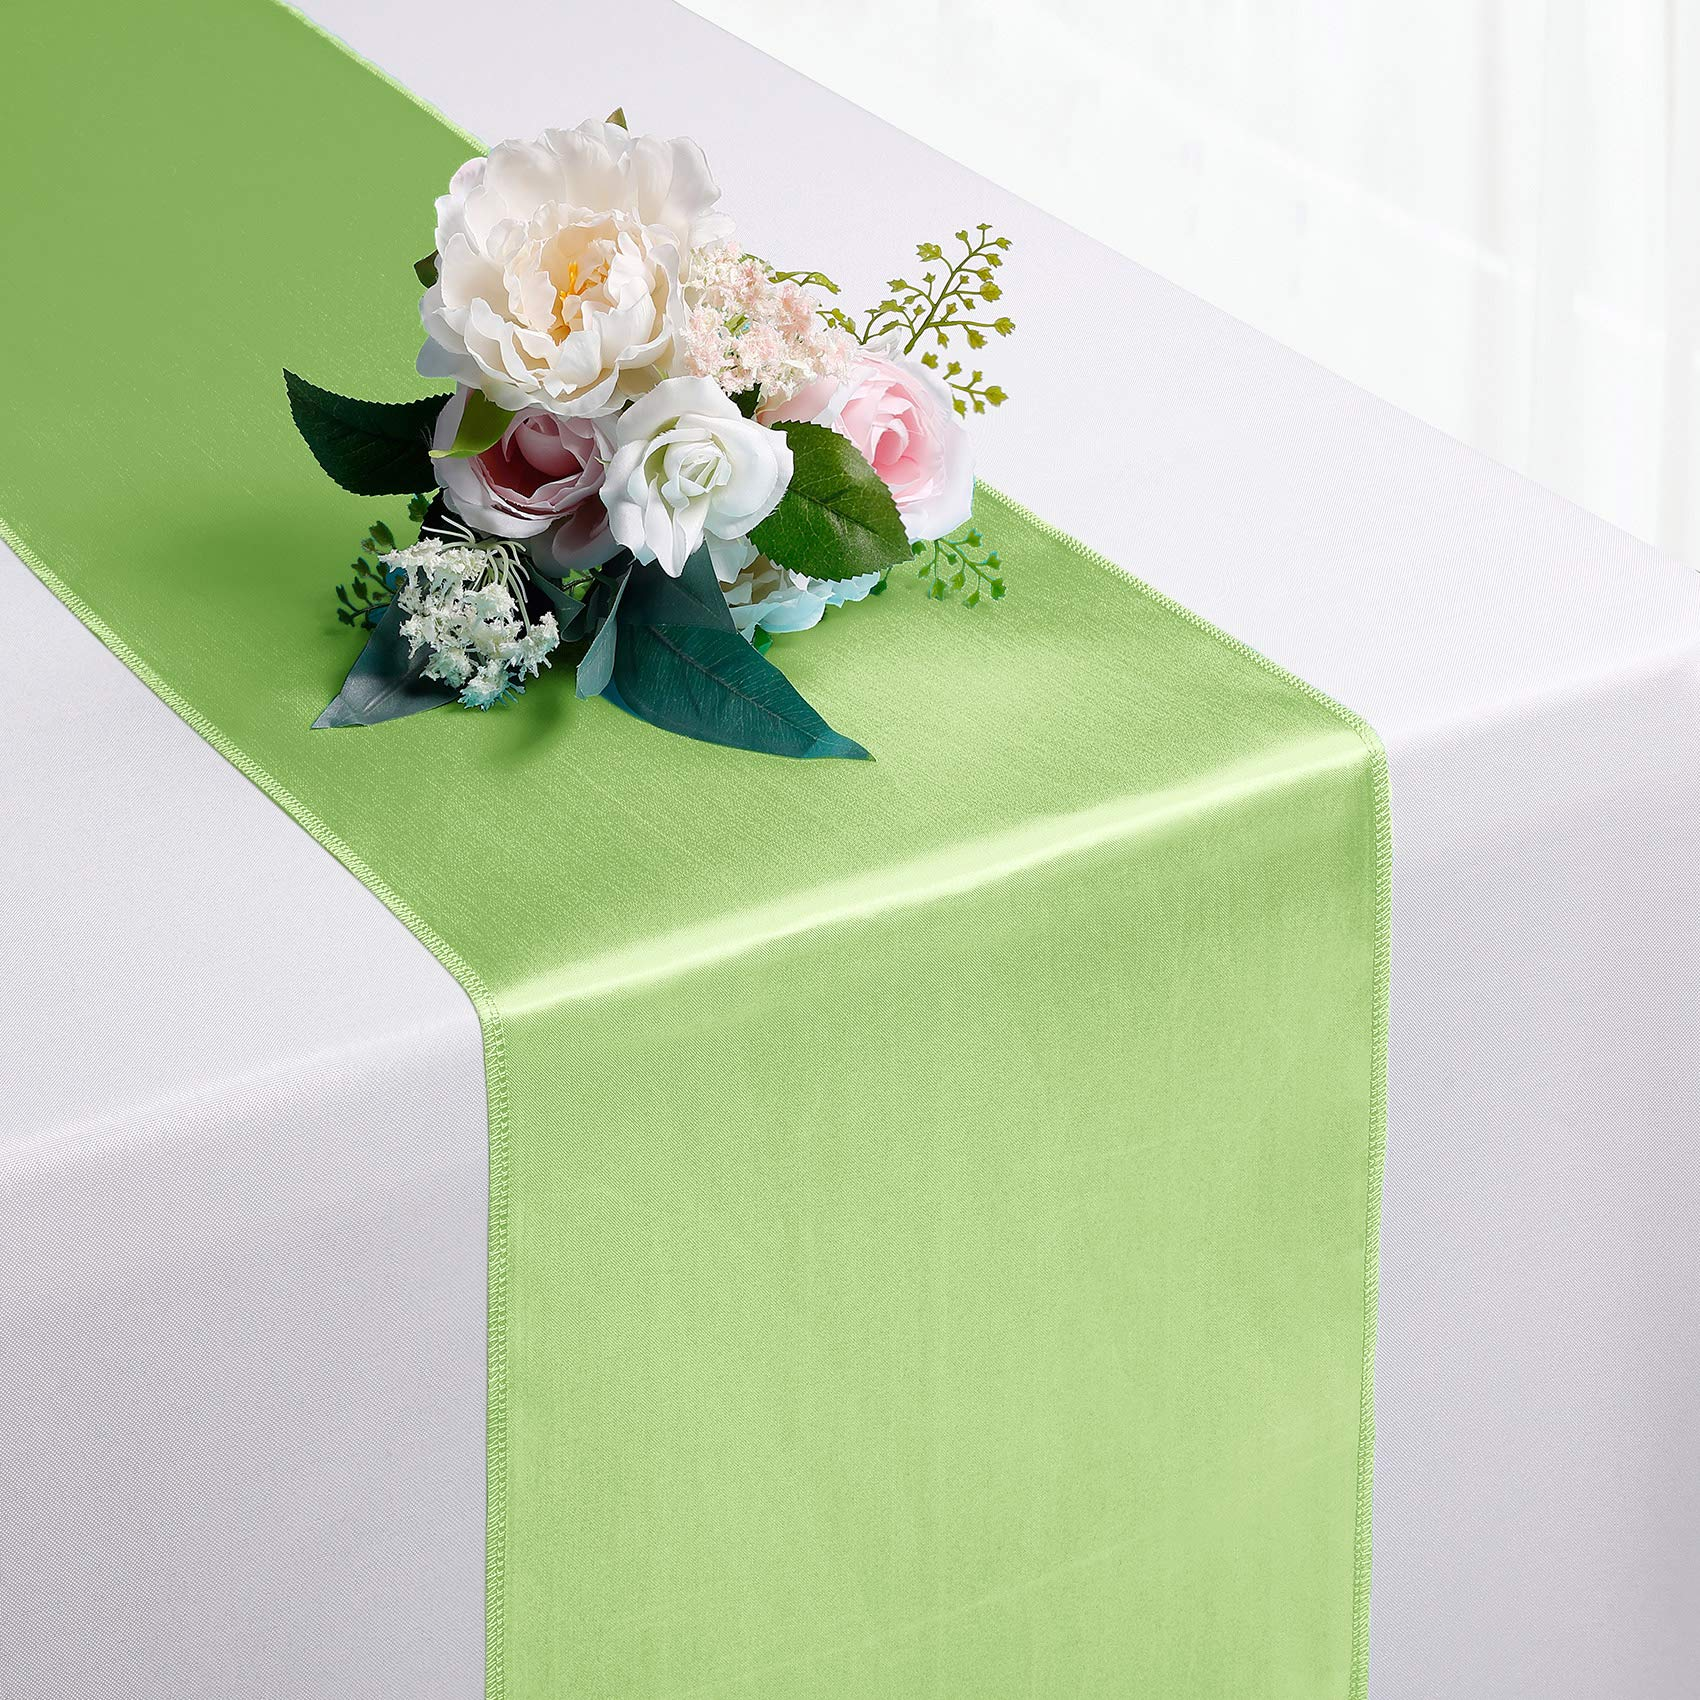 Hahuho 1-Pack Satin Table Runner Apple Green 12 x 108 inches Long, Table Runners for Wedding, Birthday Parties, Banquets Decorations(1 Pack, 12x108 Inch, Apple Green)